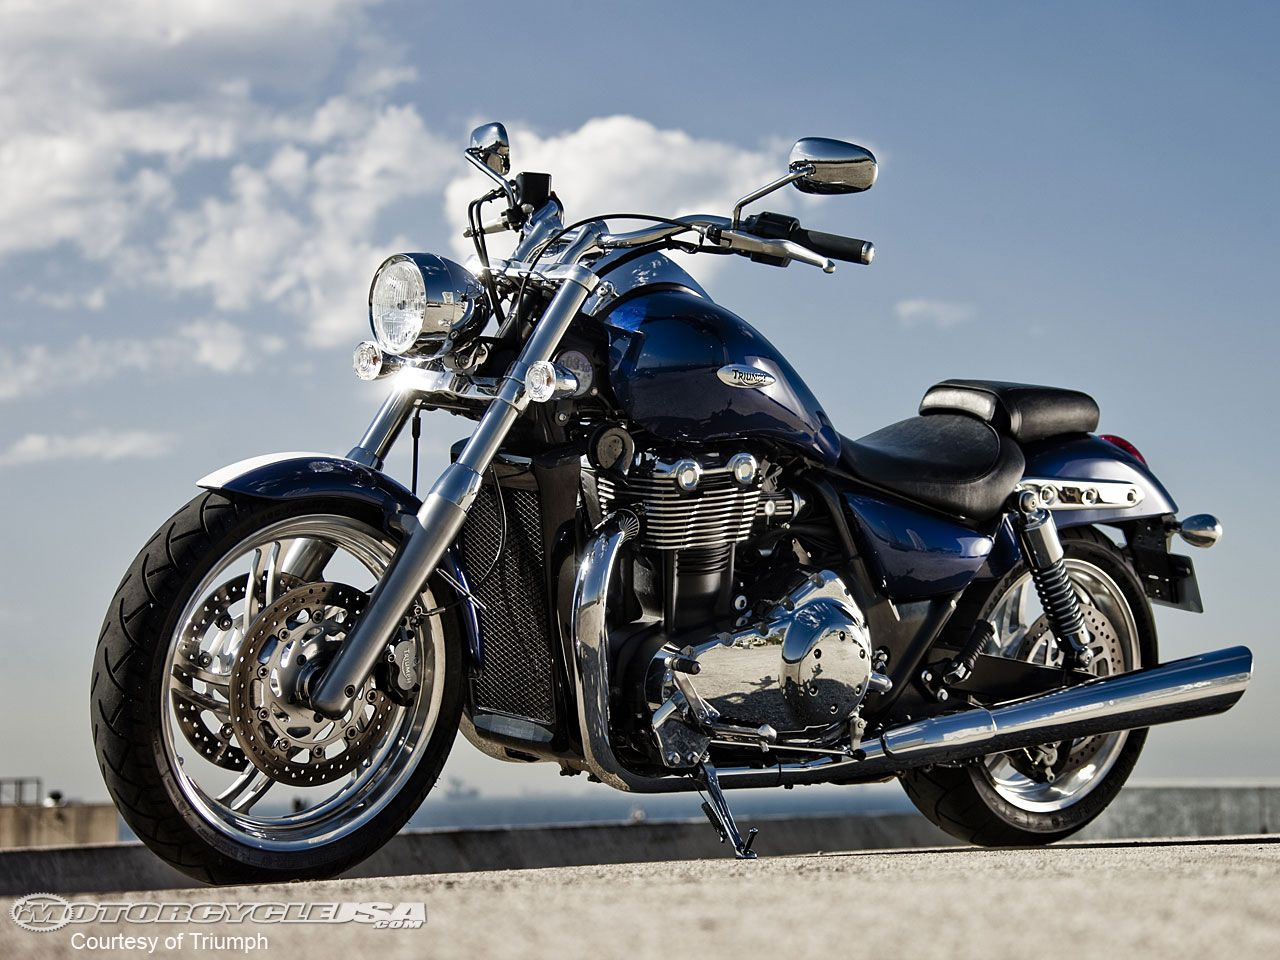 triumph motorcycles The Thunderbird sports traditional